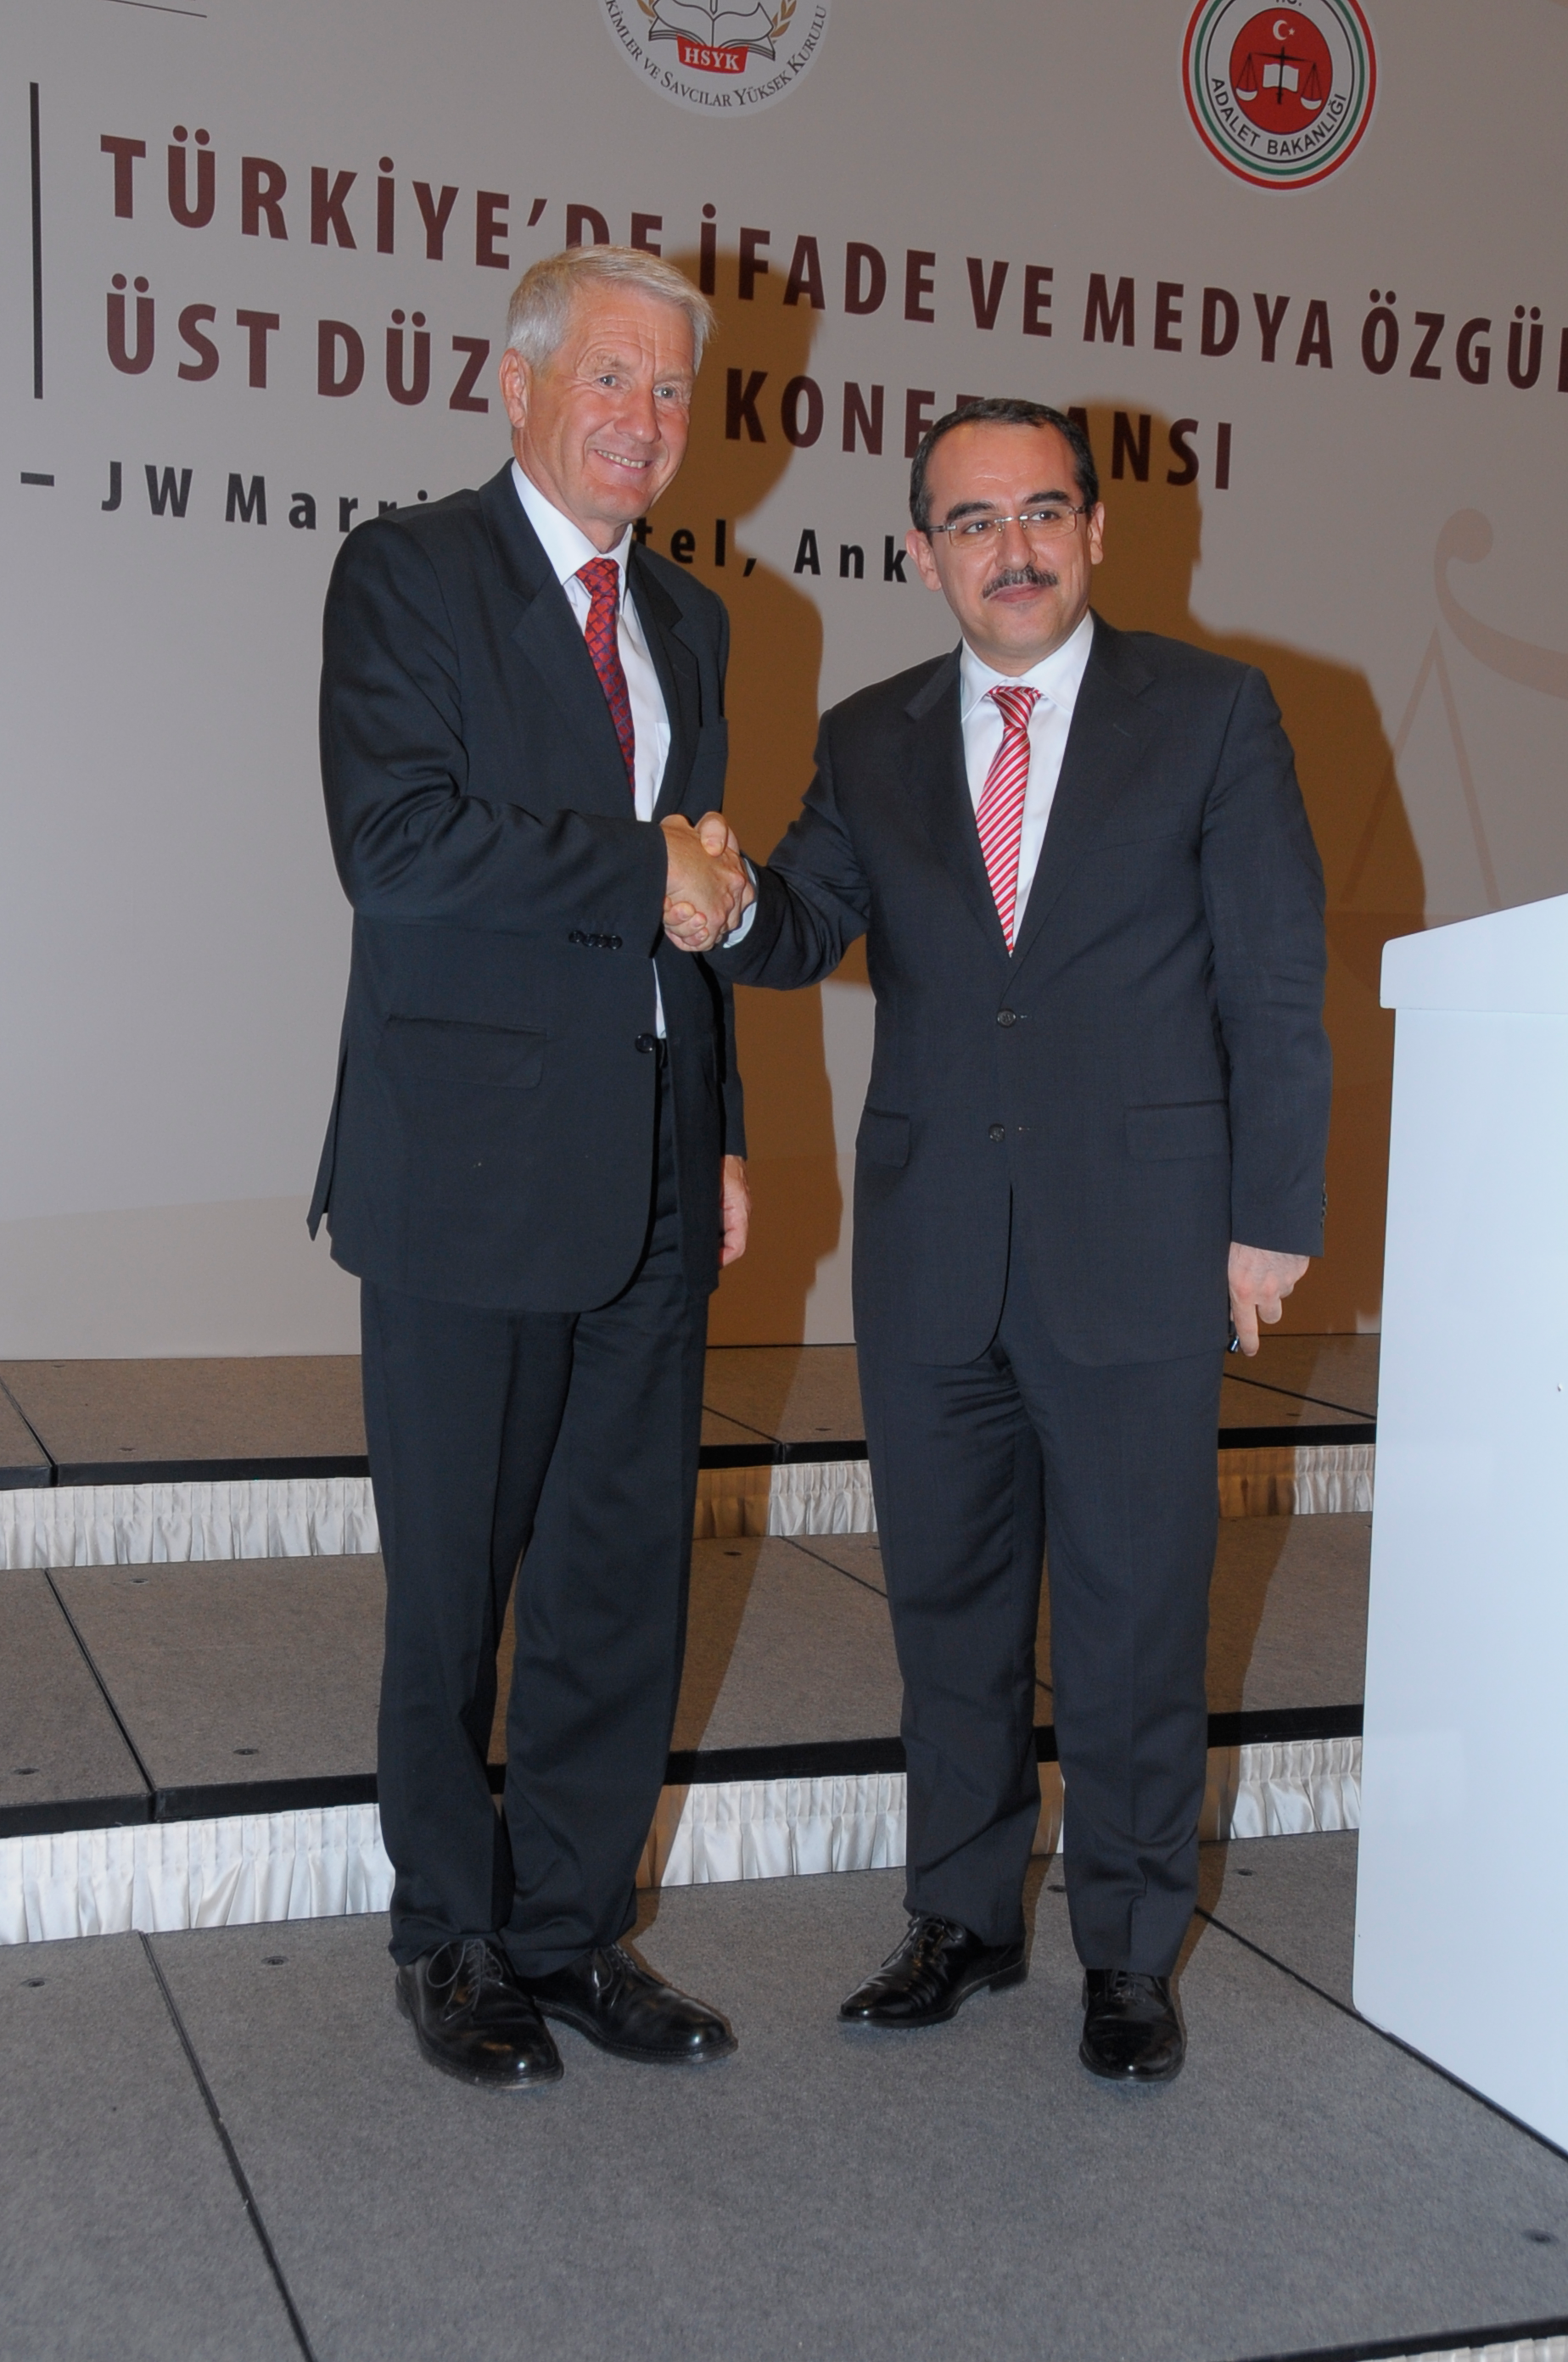 Thorbjørn Jagland and Sadullah Ergin